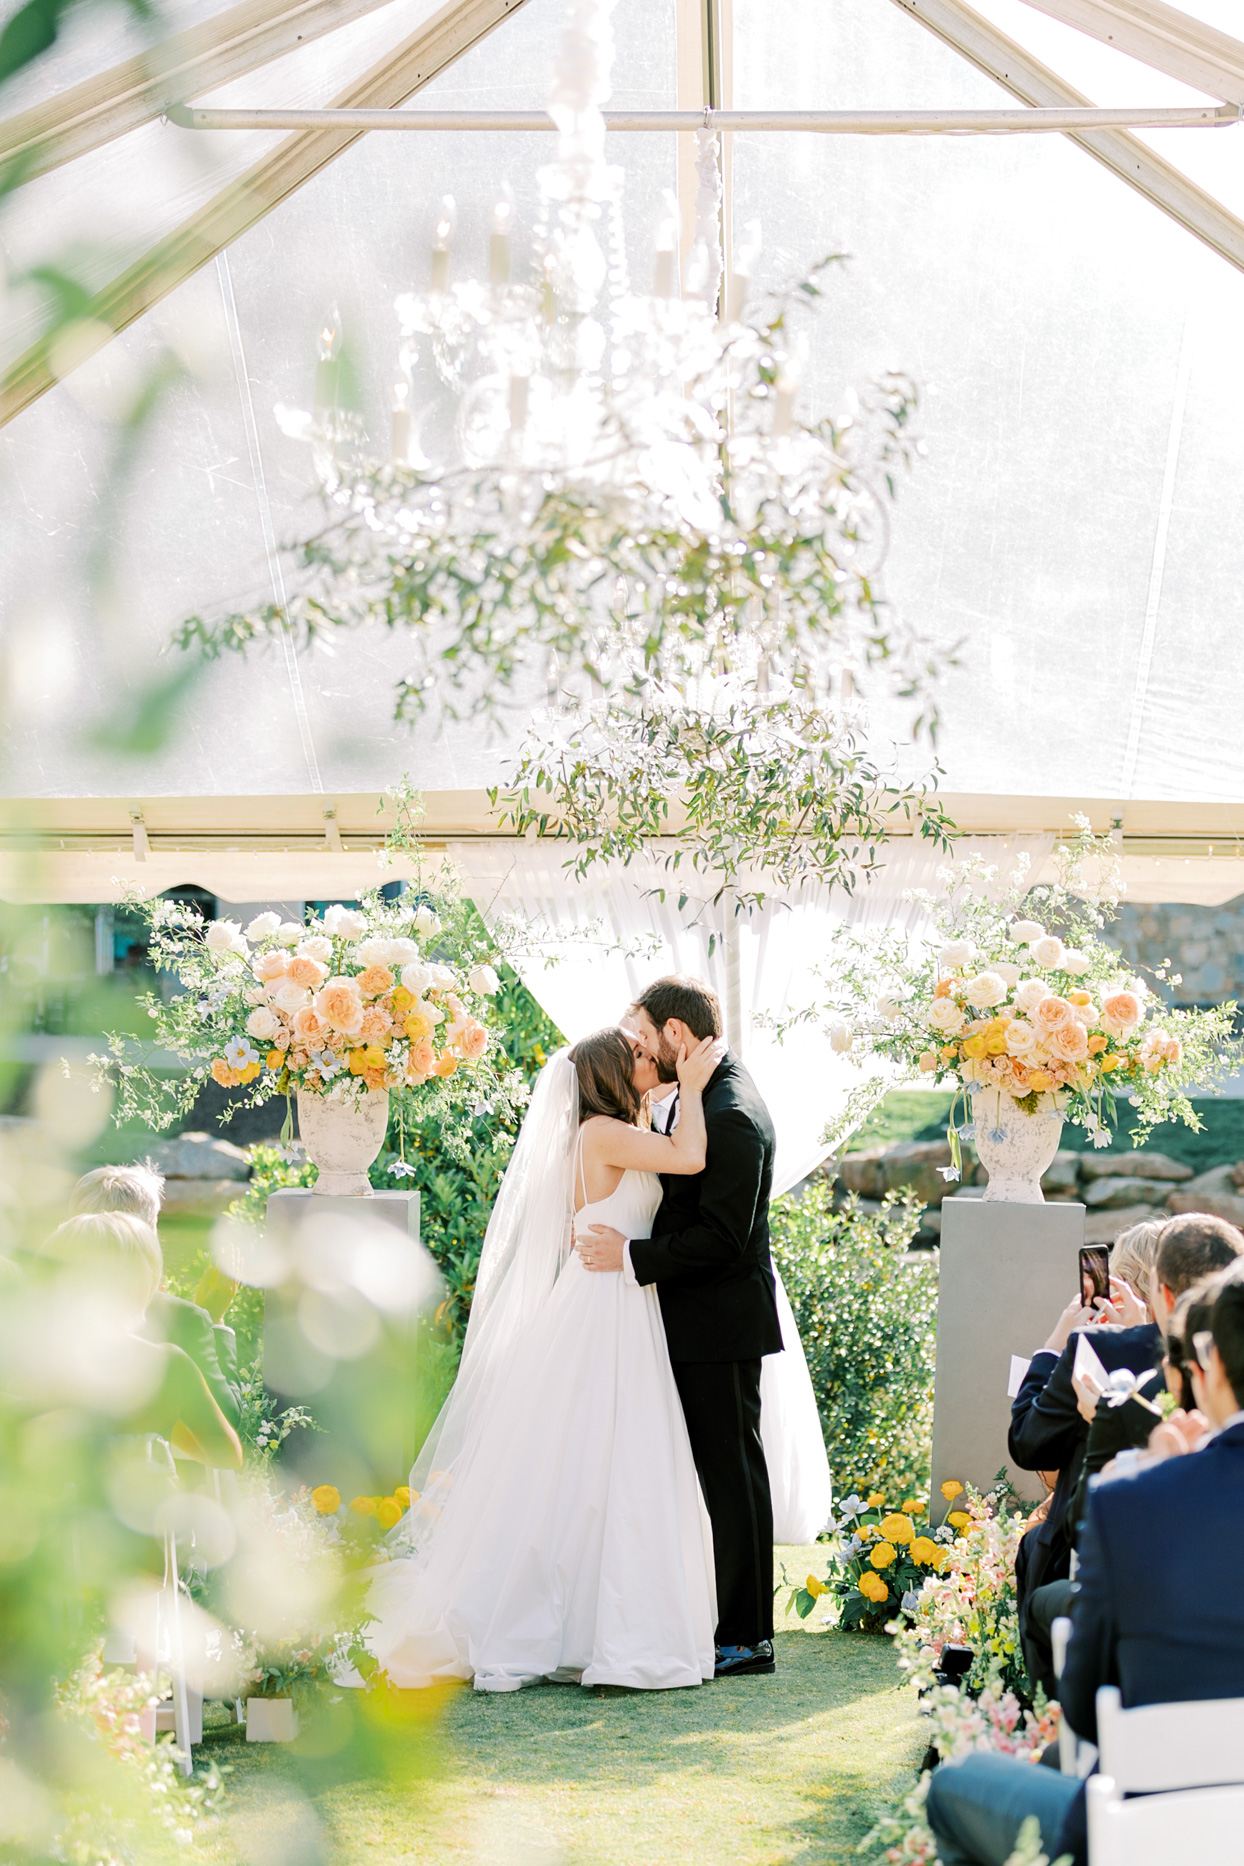 bride and groom sharing a kiss after wedding ceremony